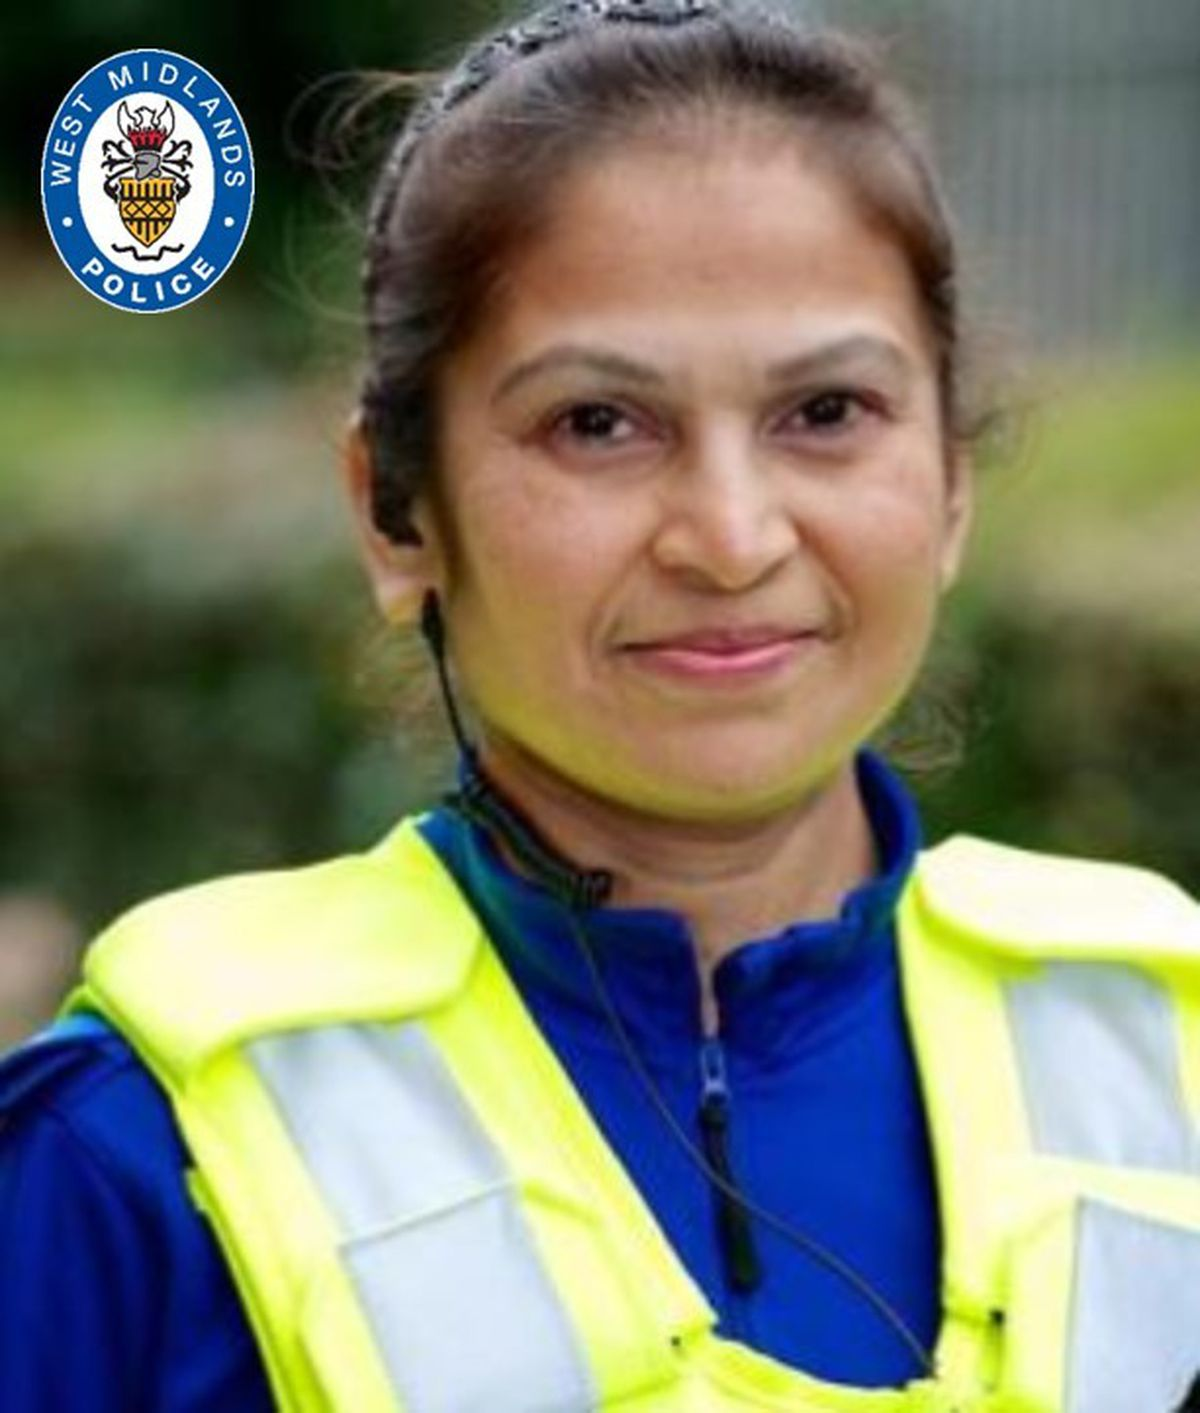 PCSO Kirti Patel achieved 20 years' service with West Midlands Police this year